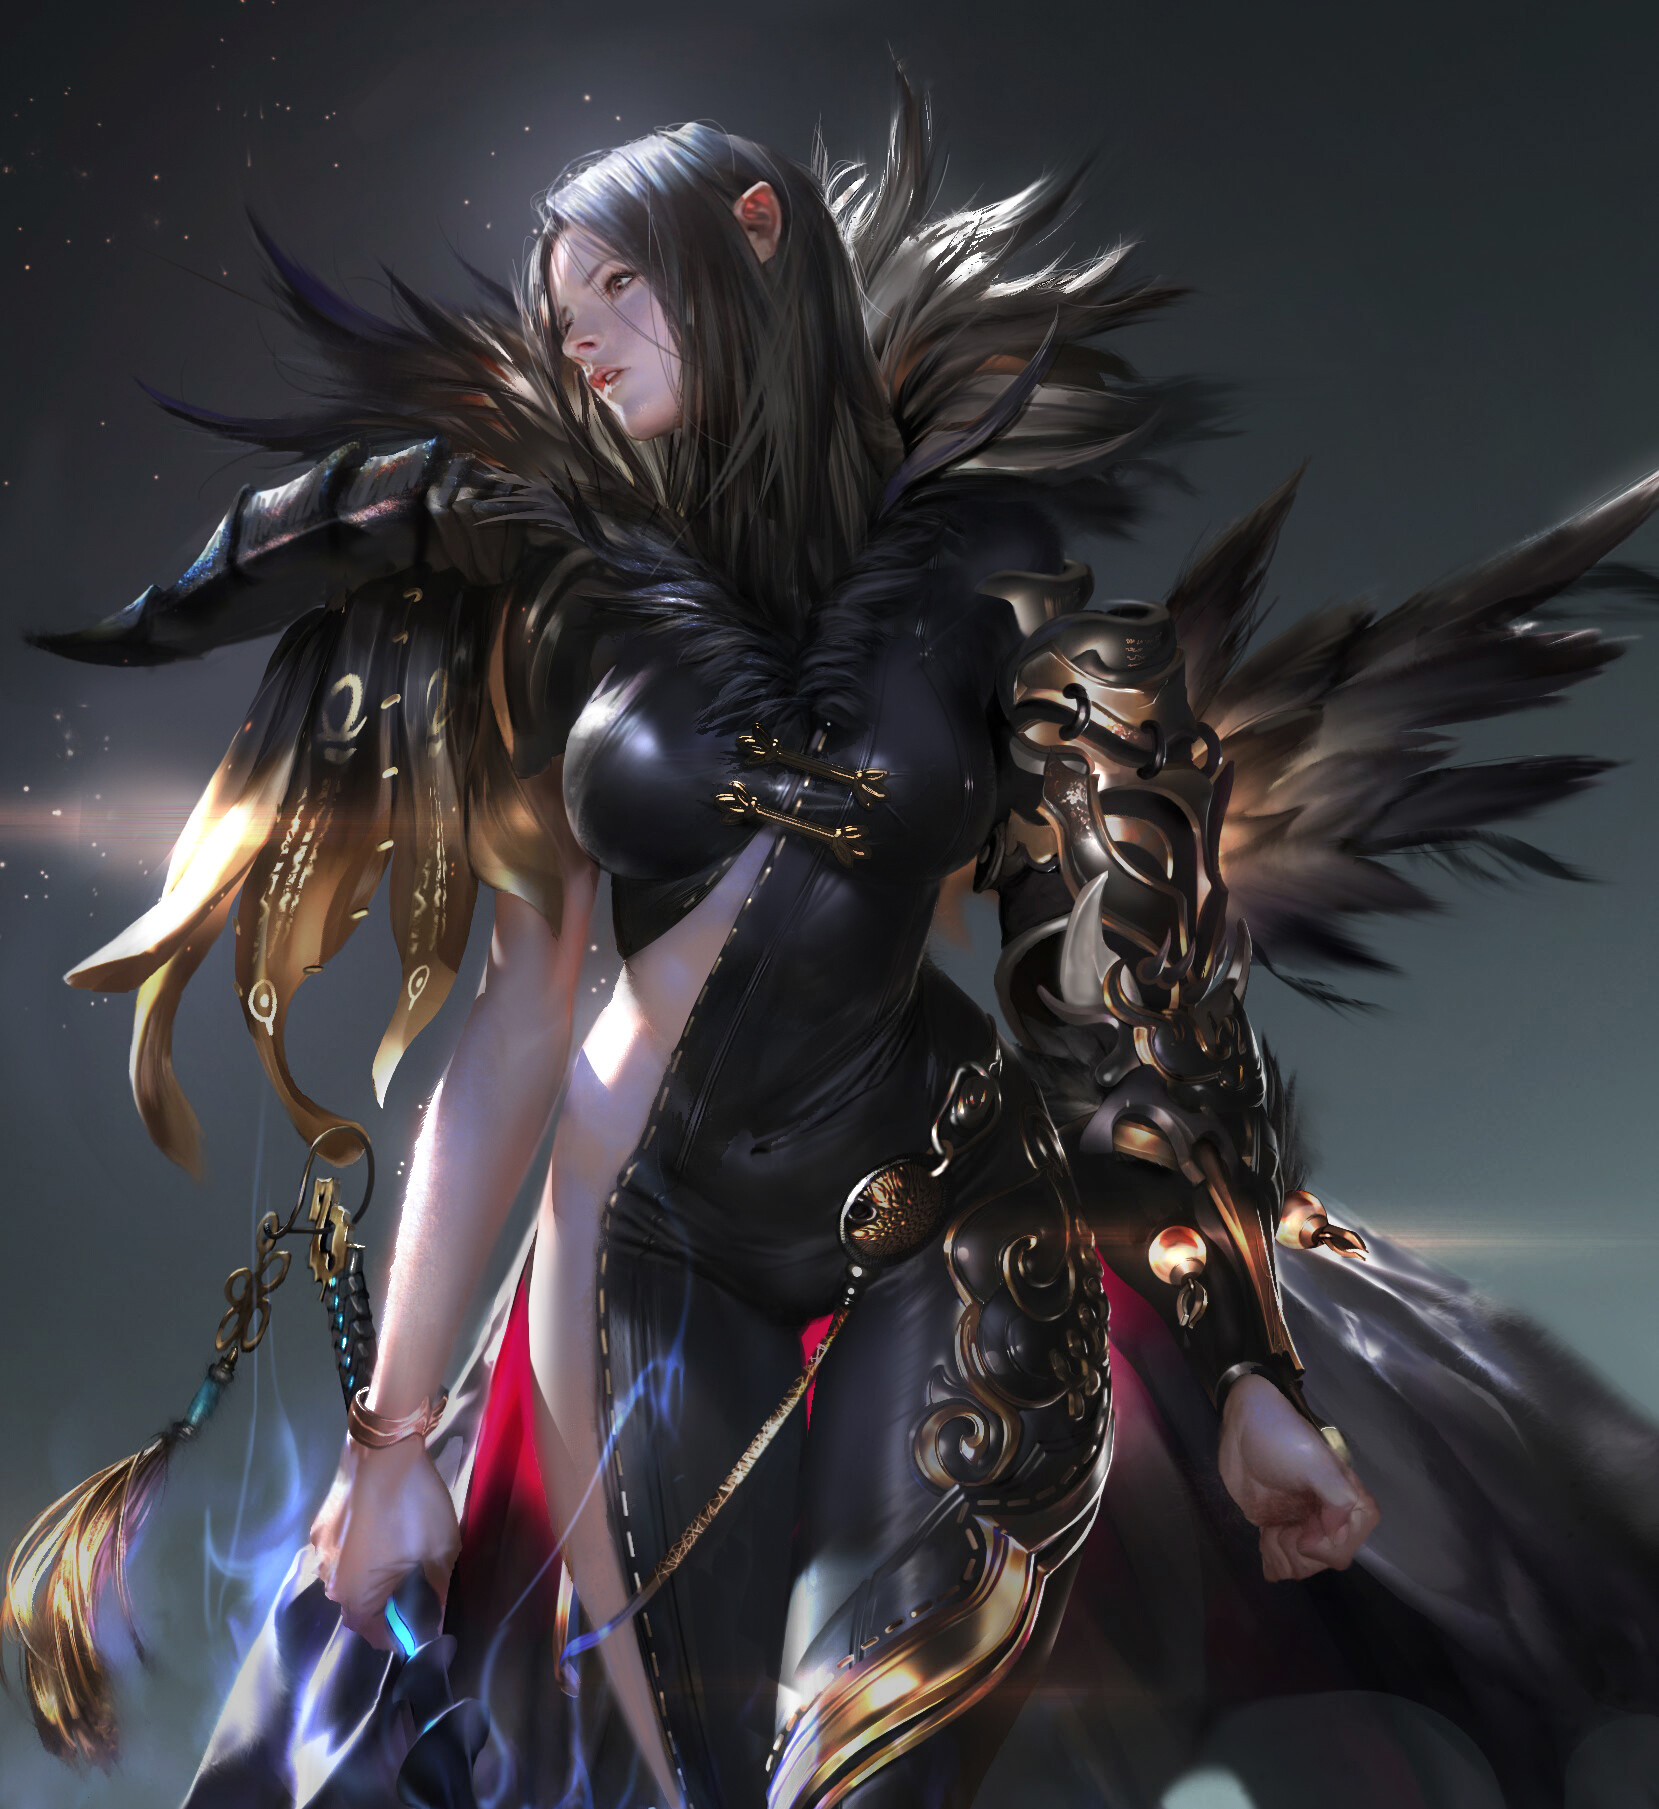 The Digital Fantasy Art of Hyun Suk Lee